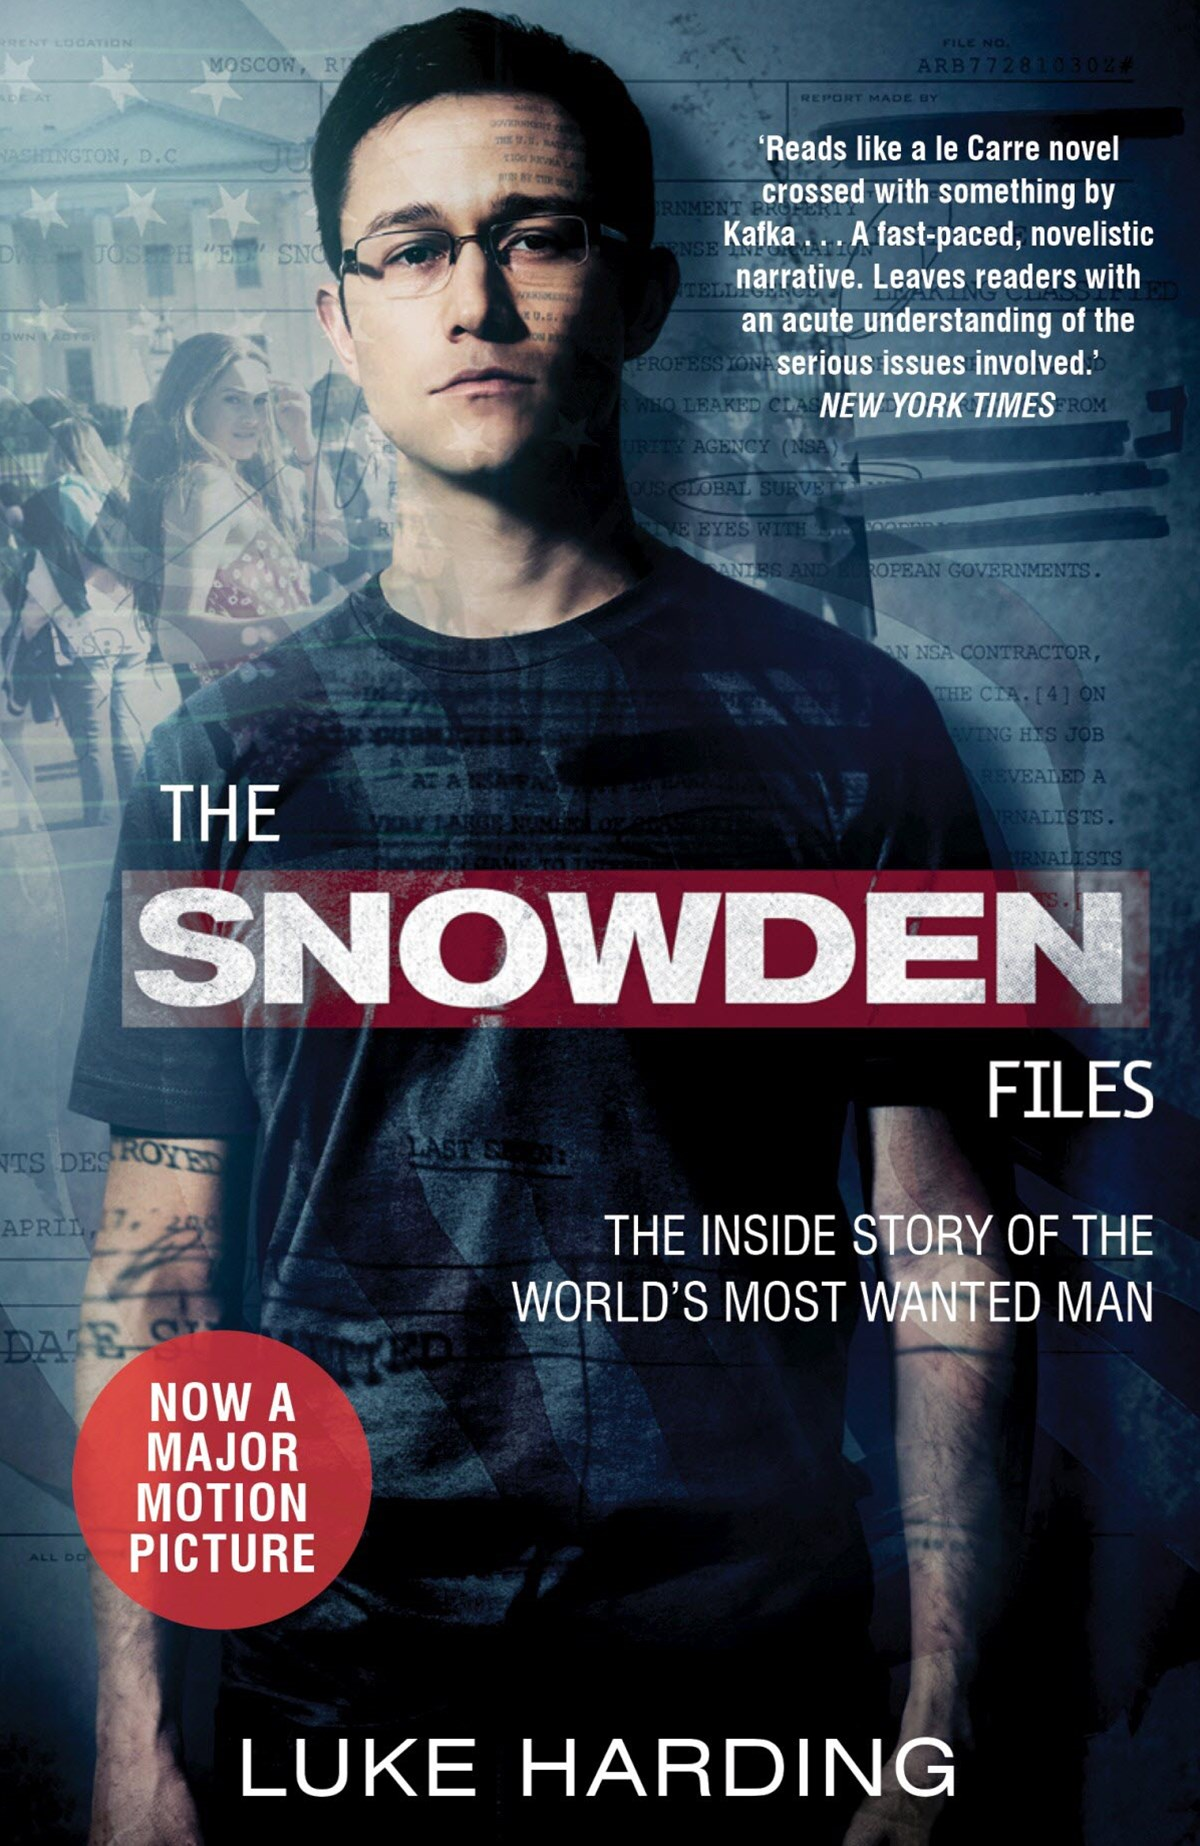 The Snowden Files (Film tie-in)